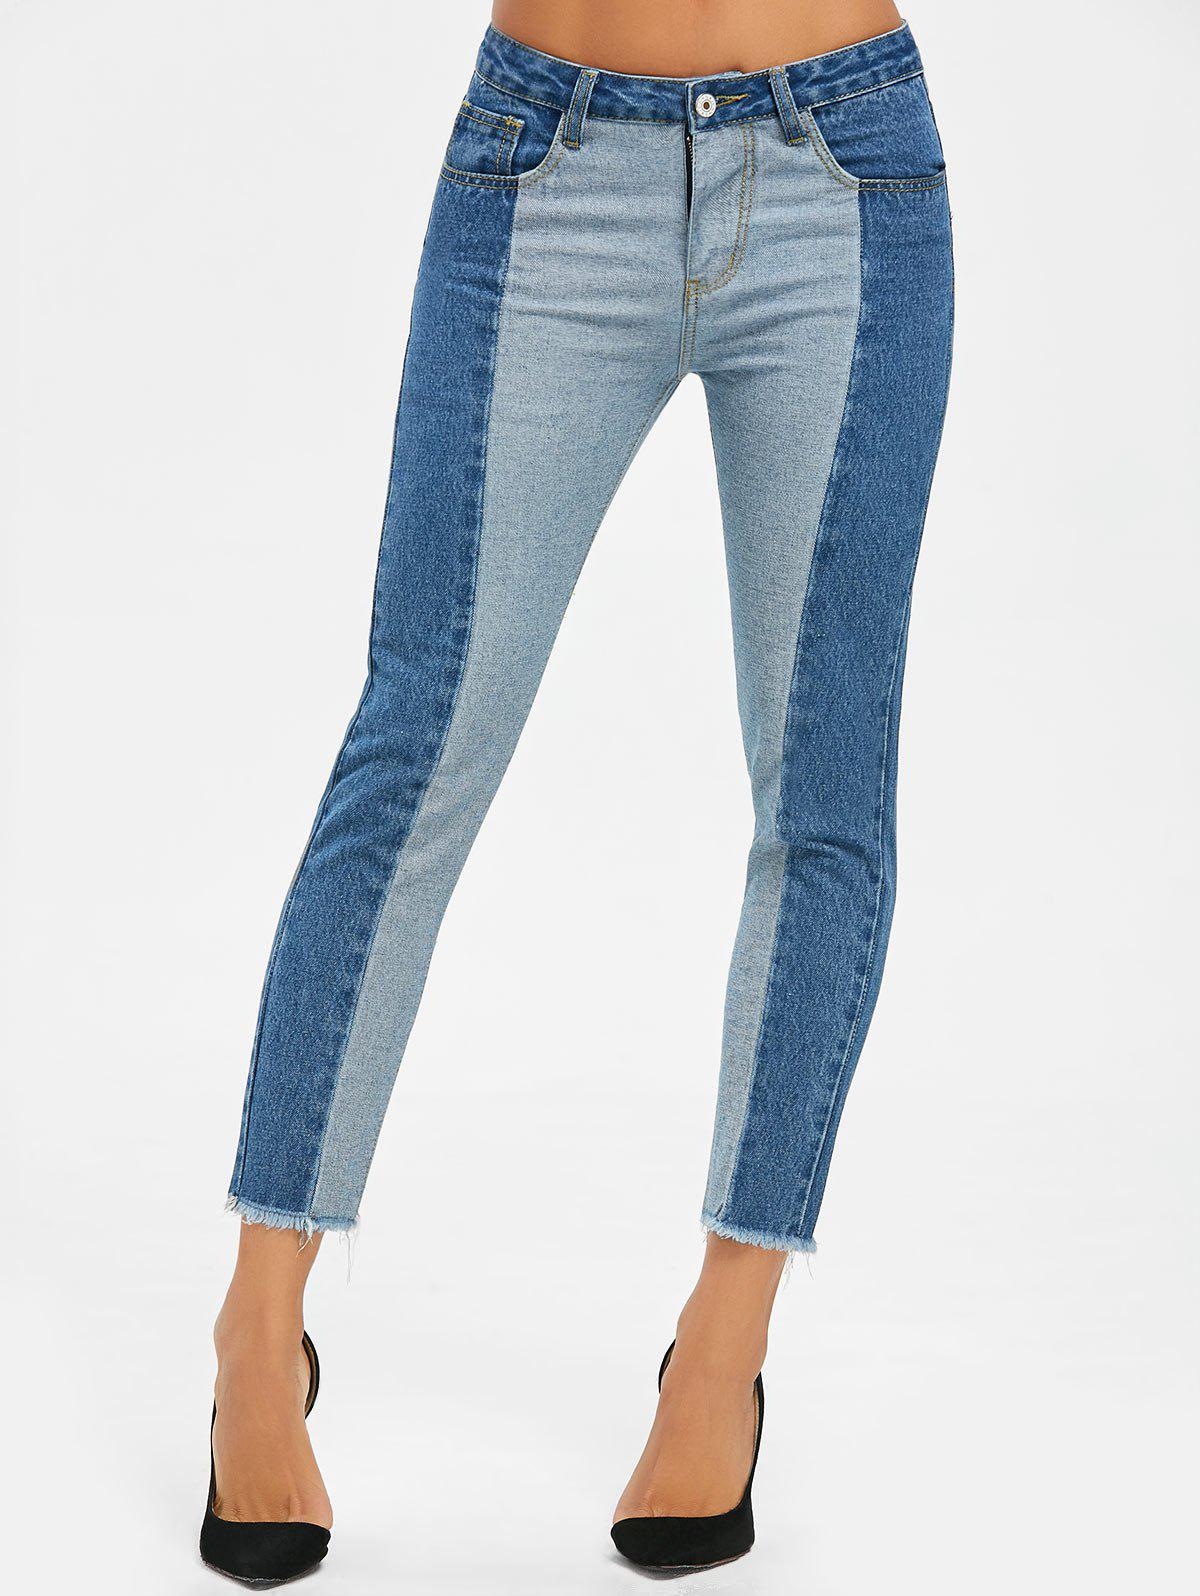 Two Tone Raw Edge Crop Jeans - DENIM BLUE L